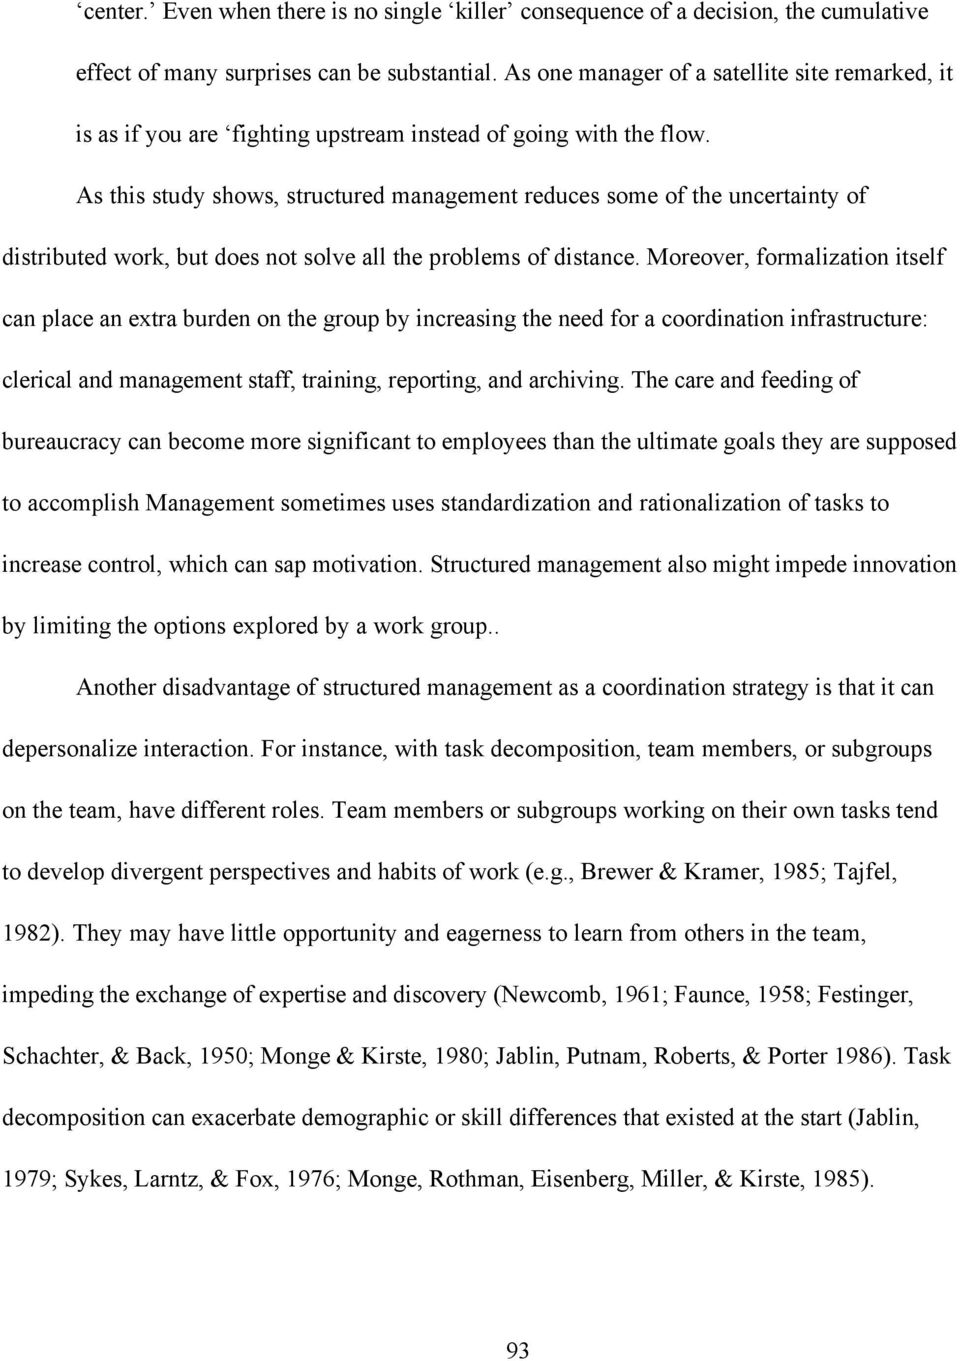 As this study shows, structured management reduces some of the uncertainty of distributed work, but does not solve all the problems of distance.